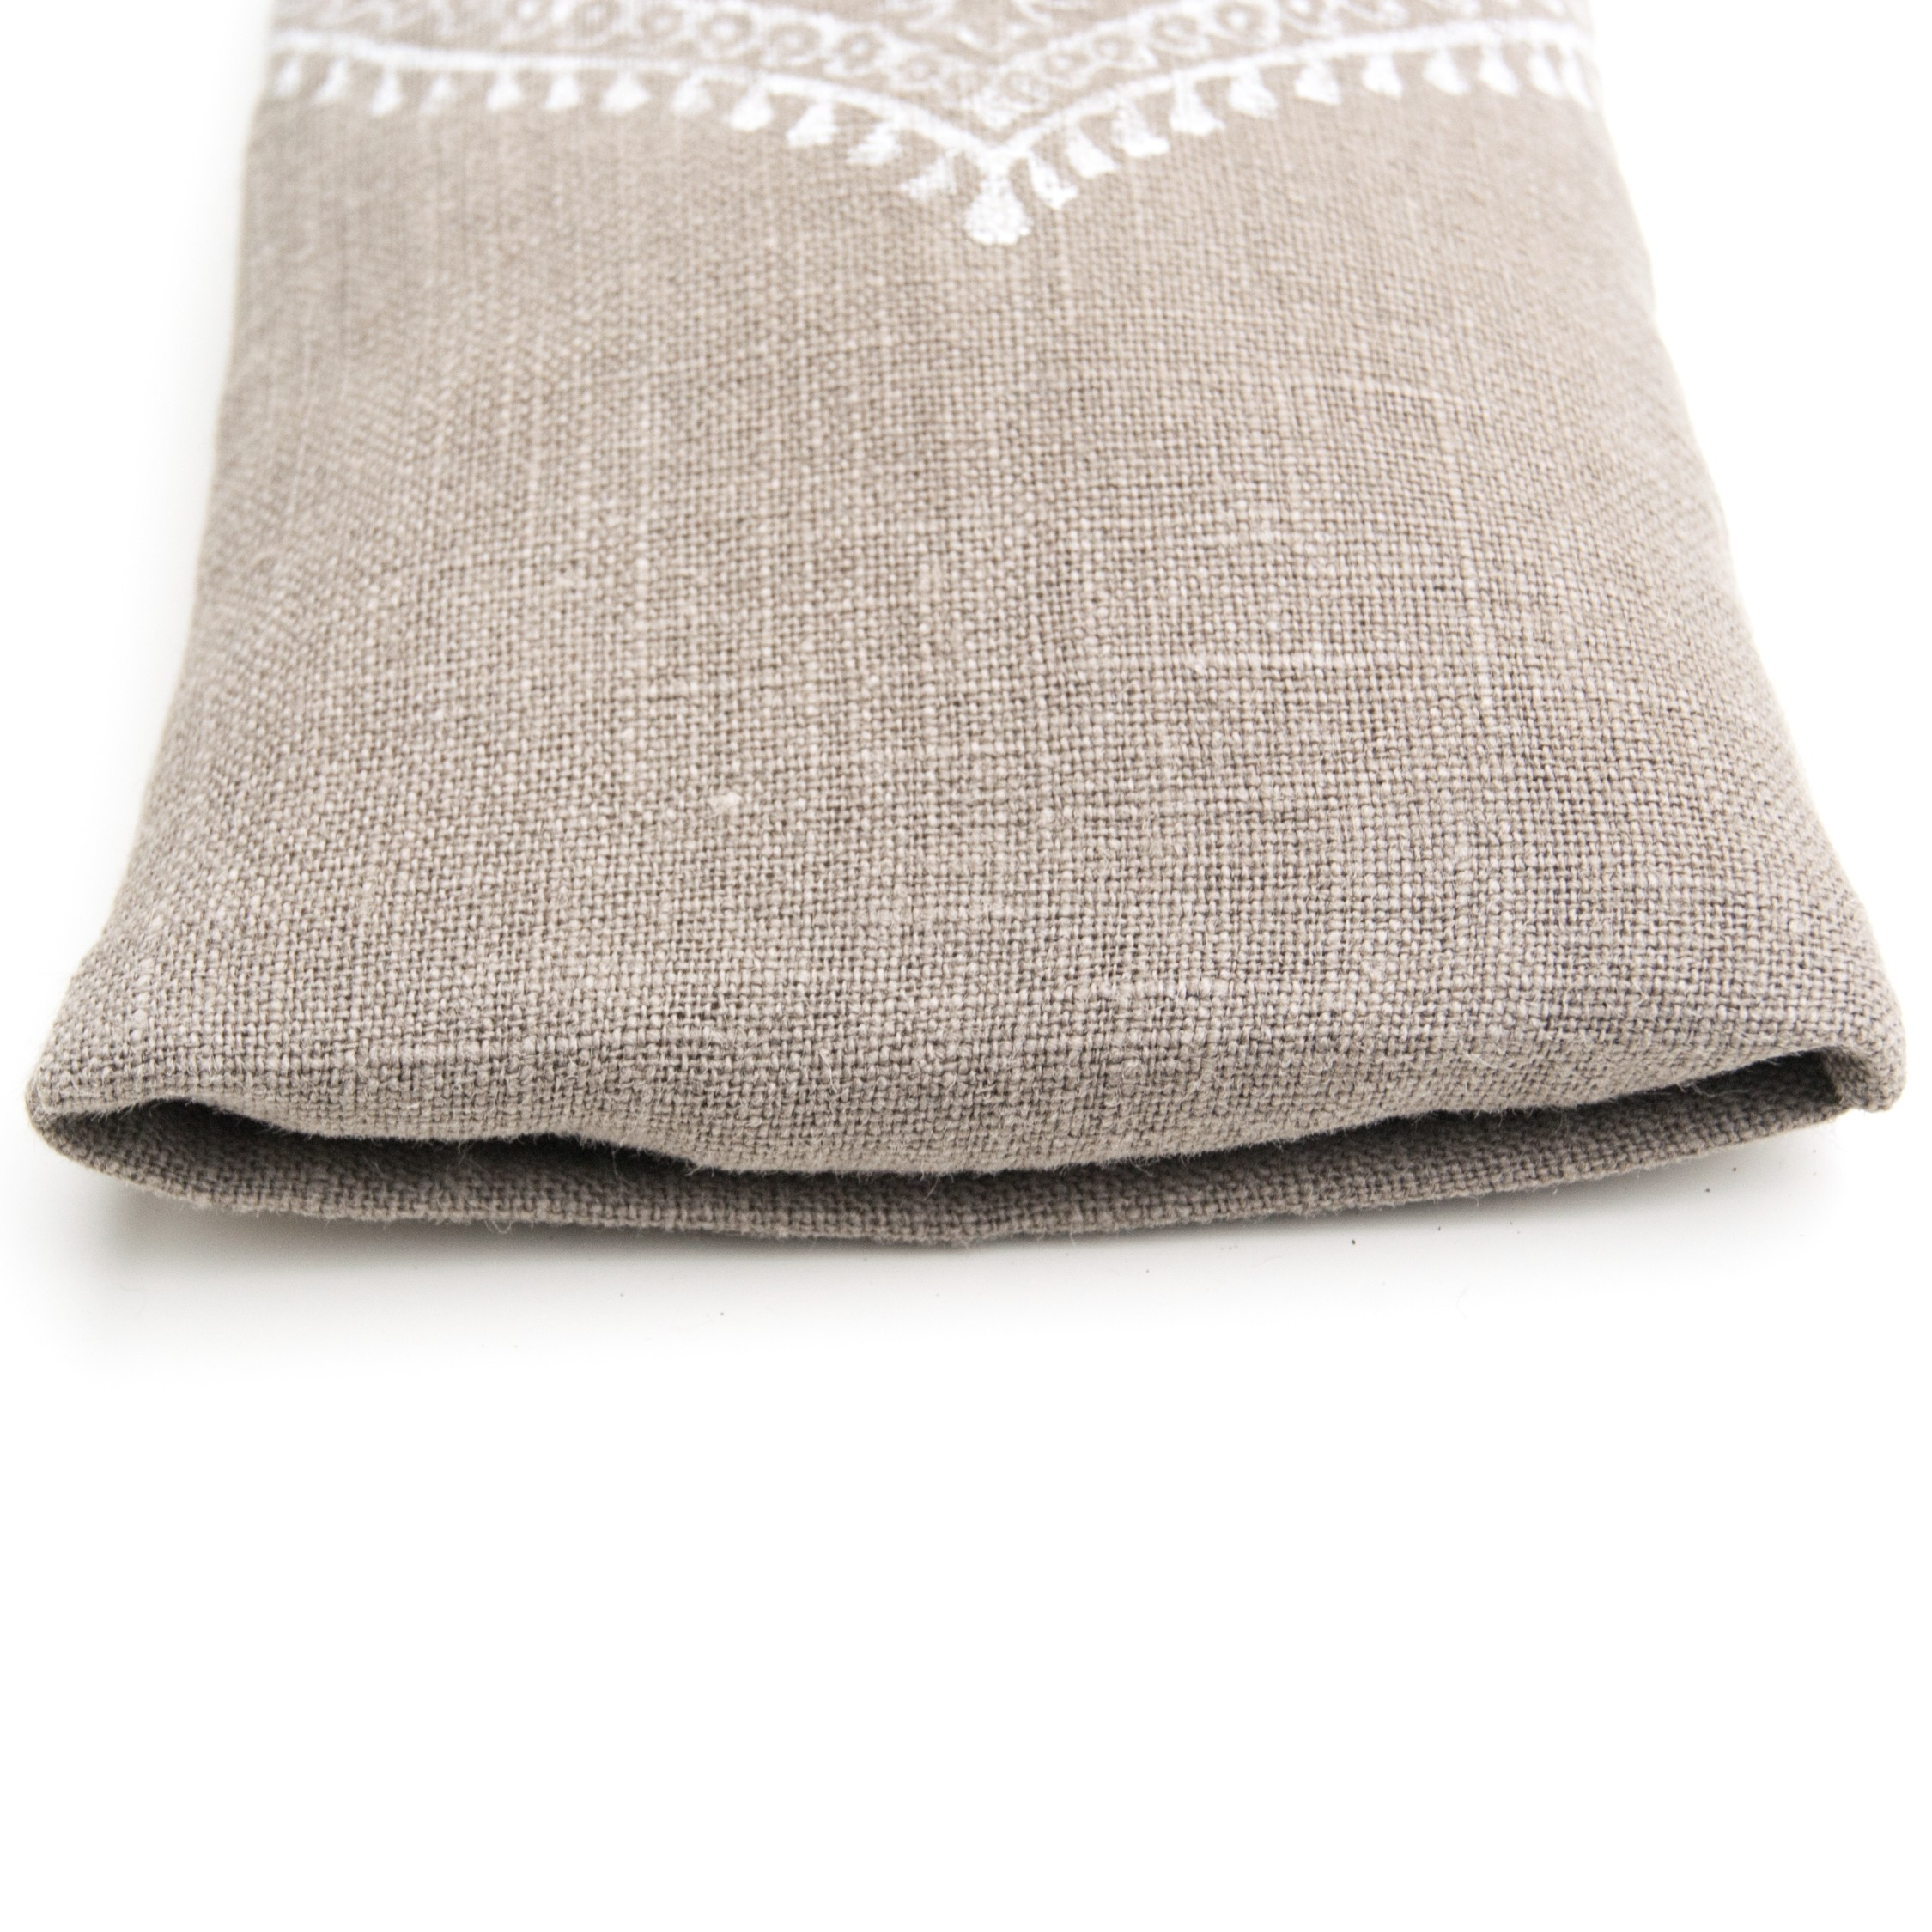 Envelope closure organic eye pillow by Pure Prana Label